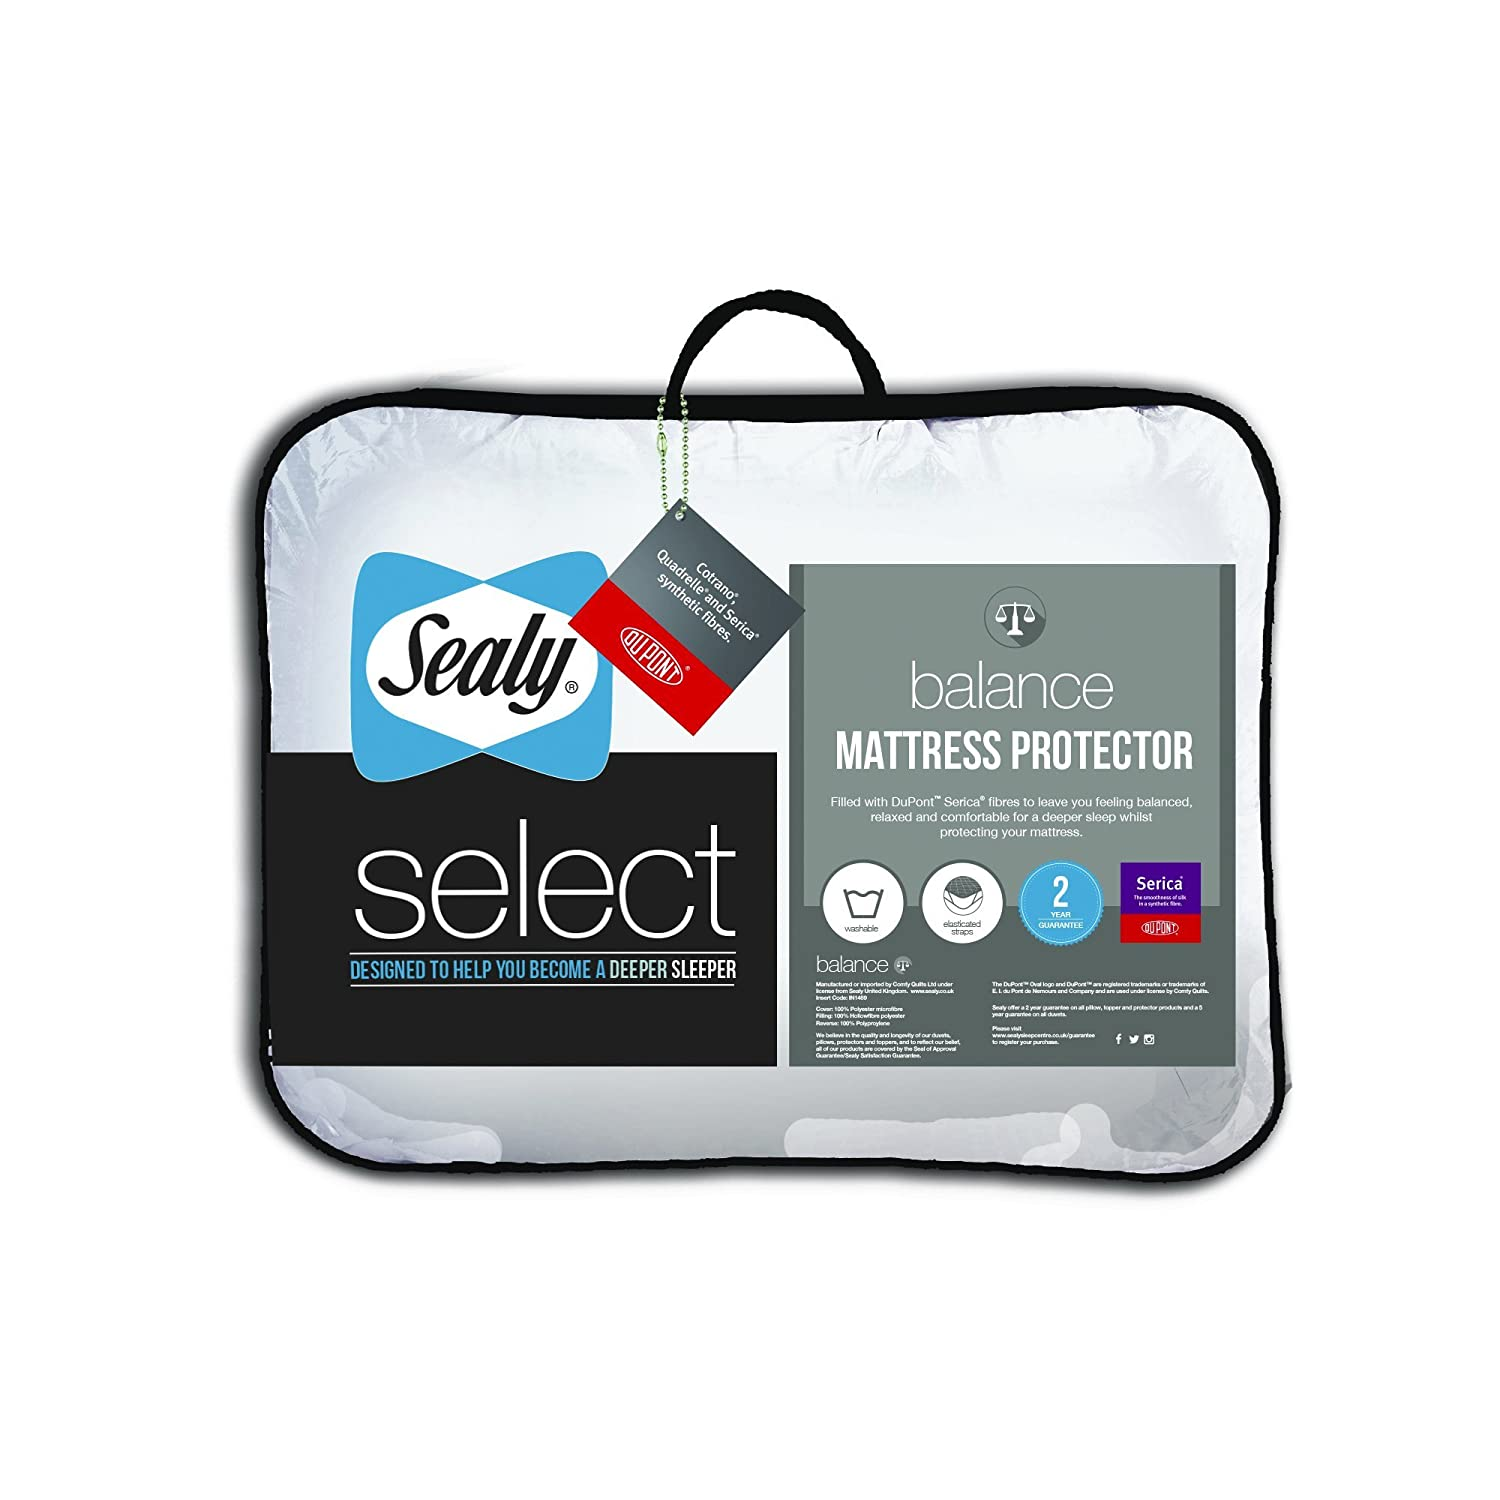 Sealy Select Balance Mattress Protector - King 449564GE